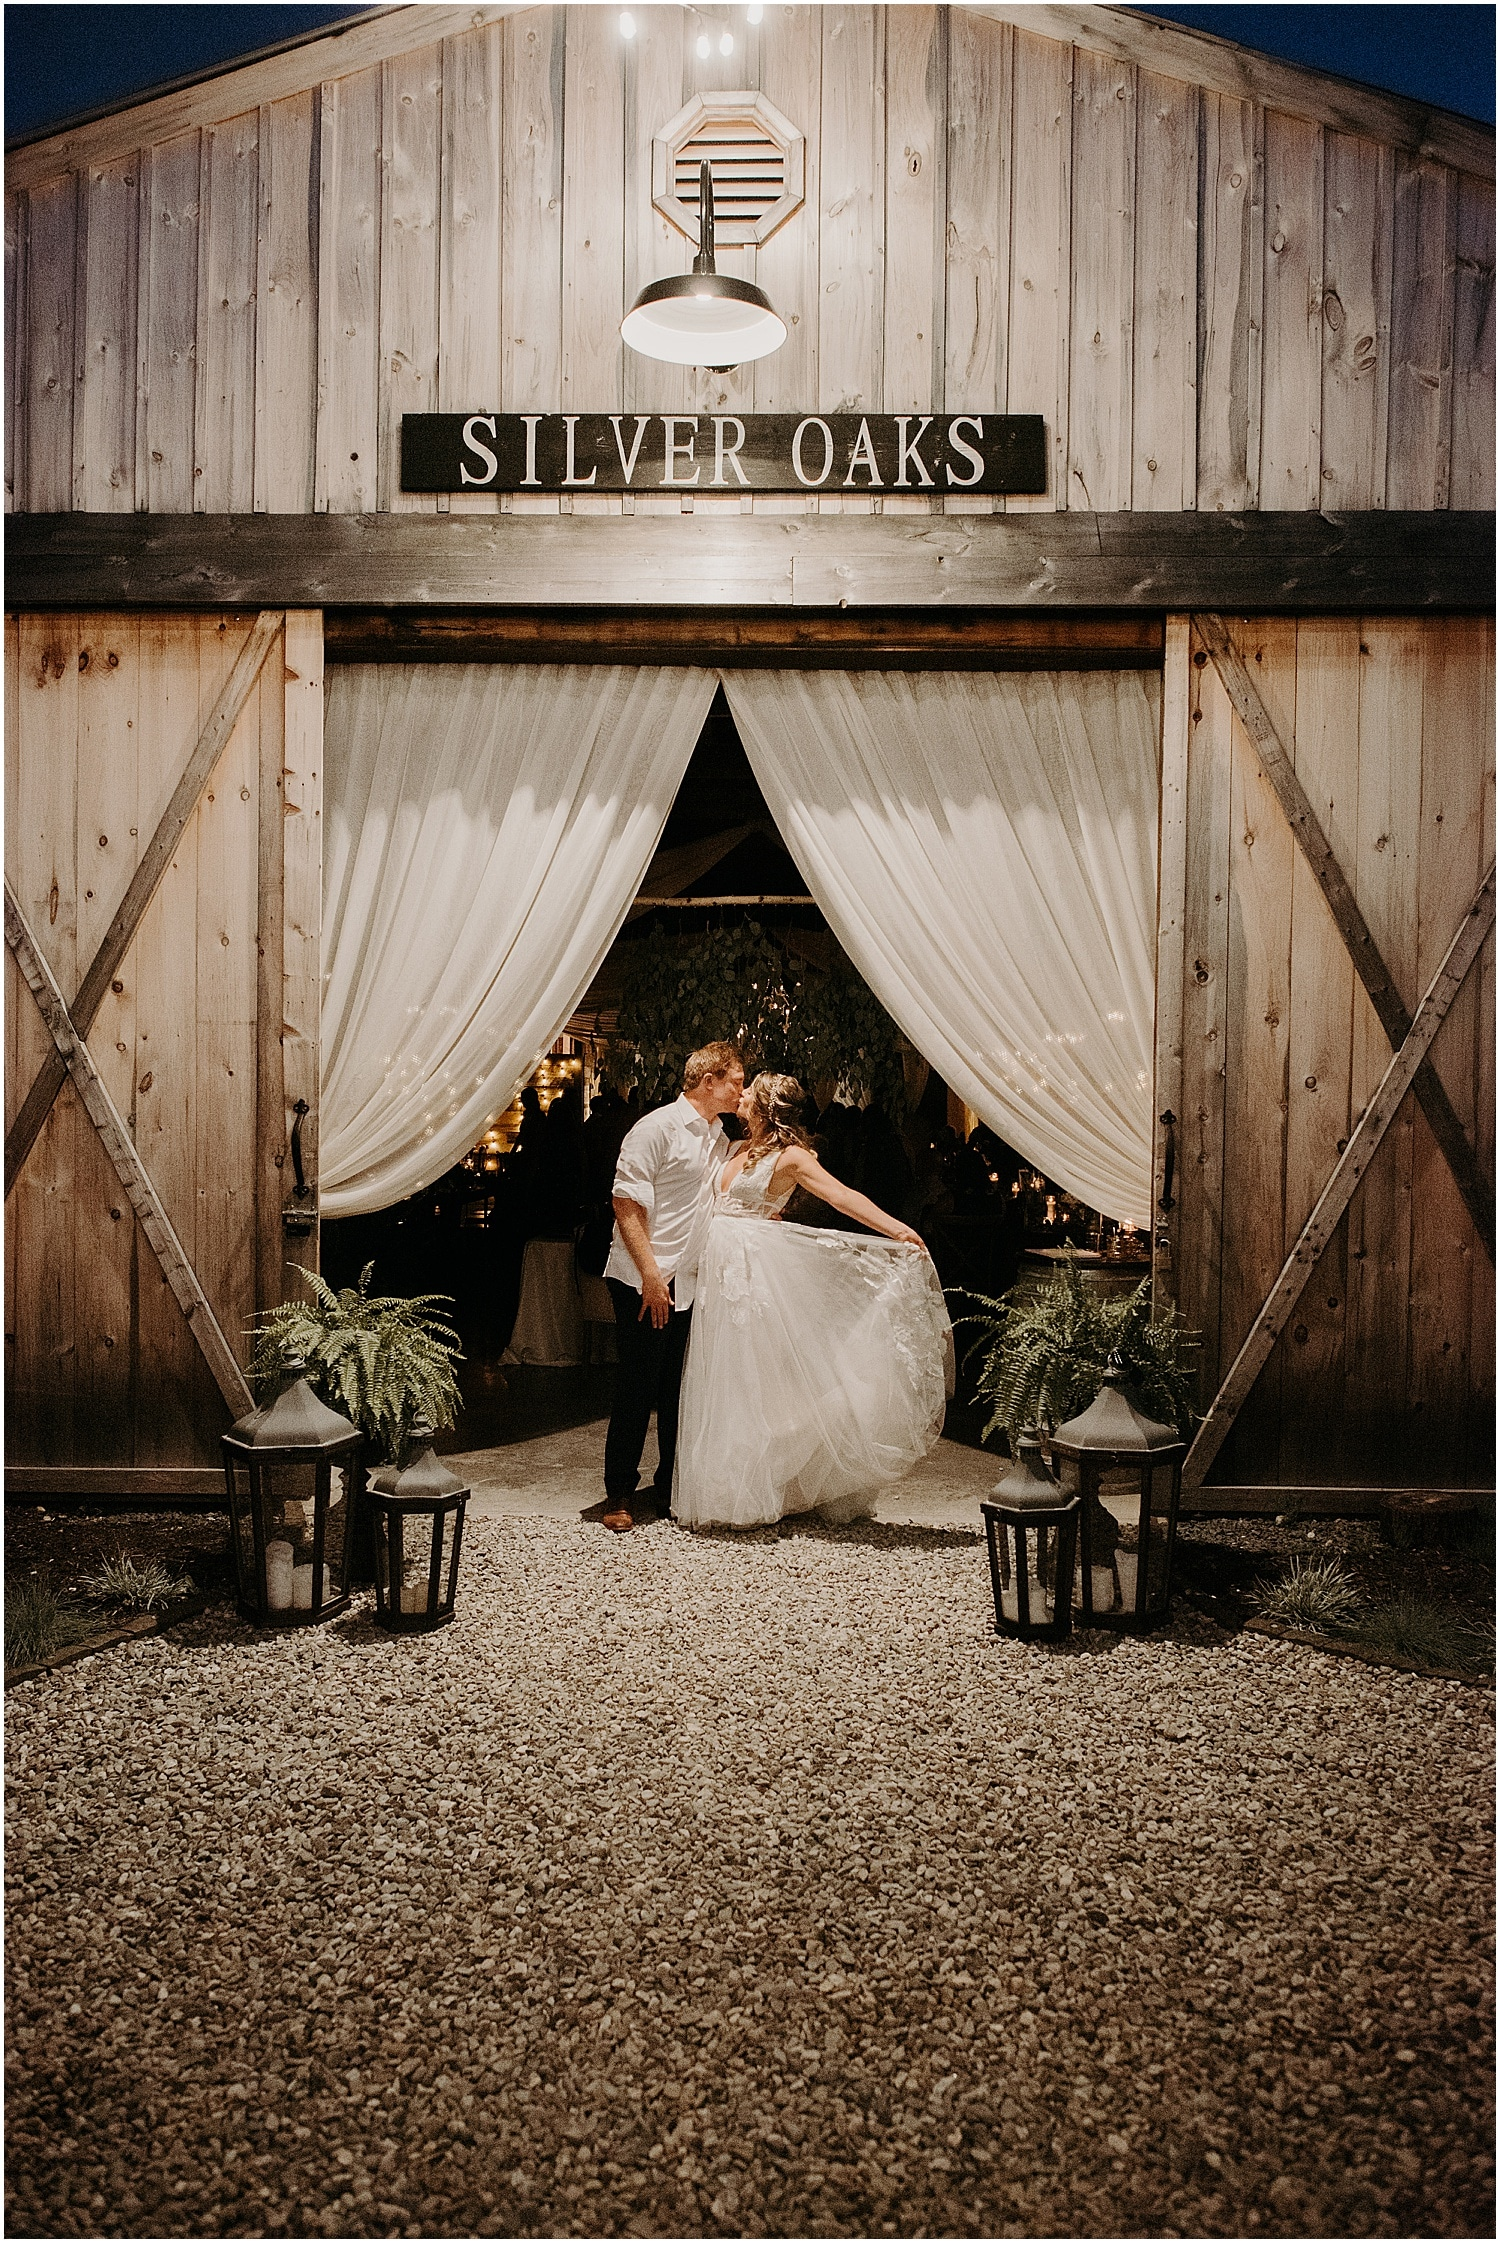 Barn at Silver Oaks Wedding bride and groom kissing in the barn